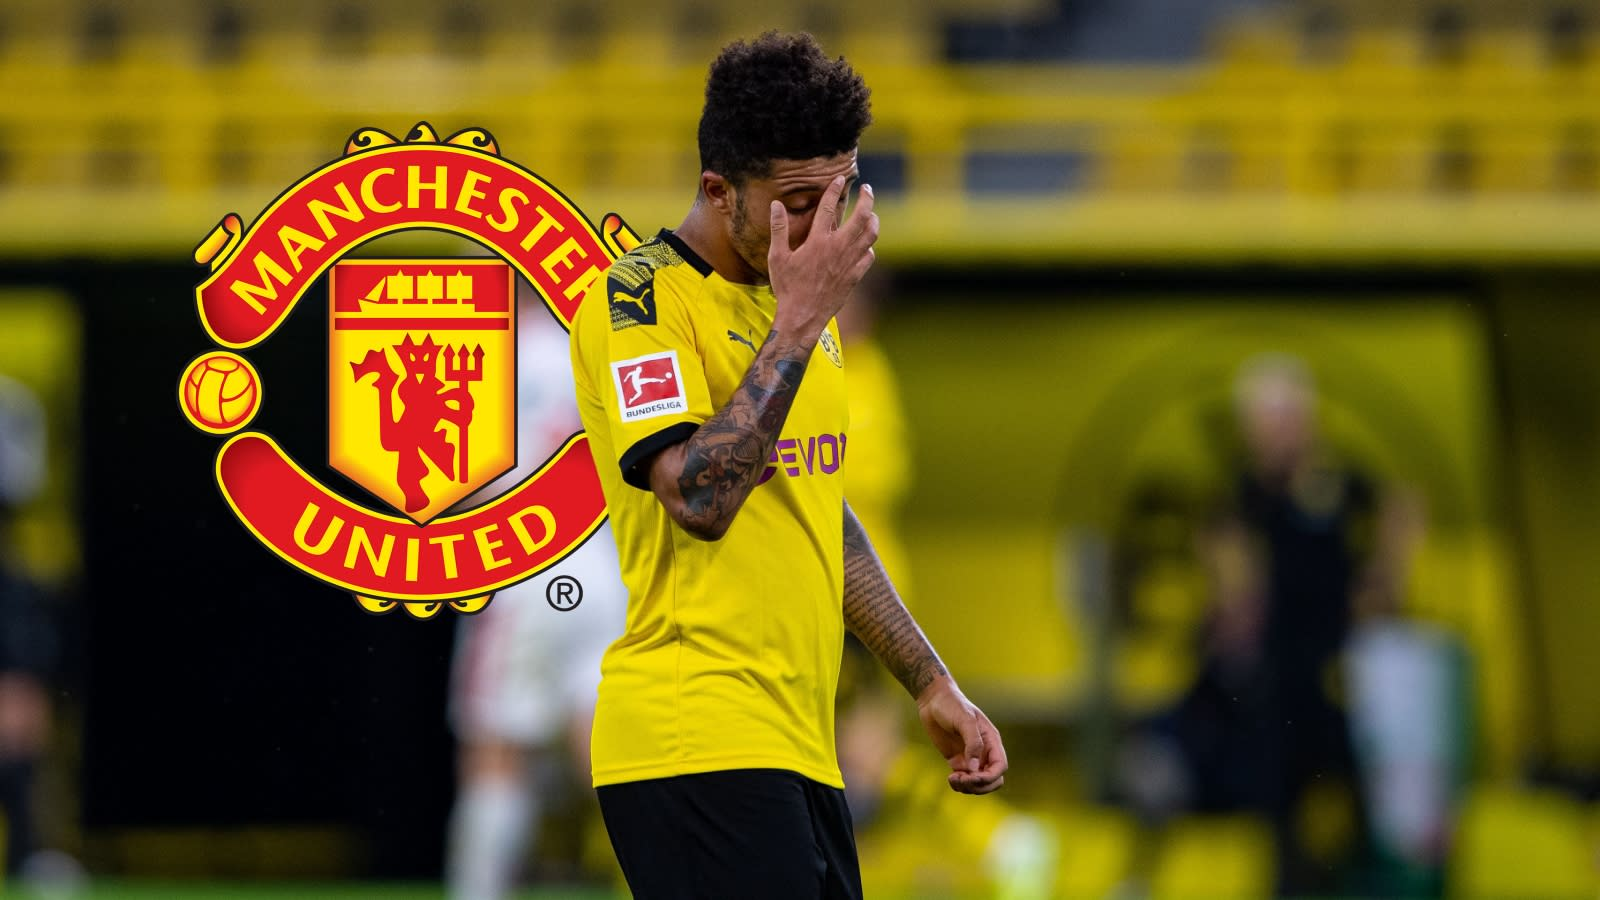 'You love to see it' - Dortmund taunt Man Utd over stalled Sancho transfer on social media